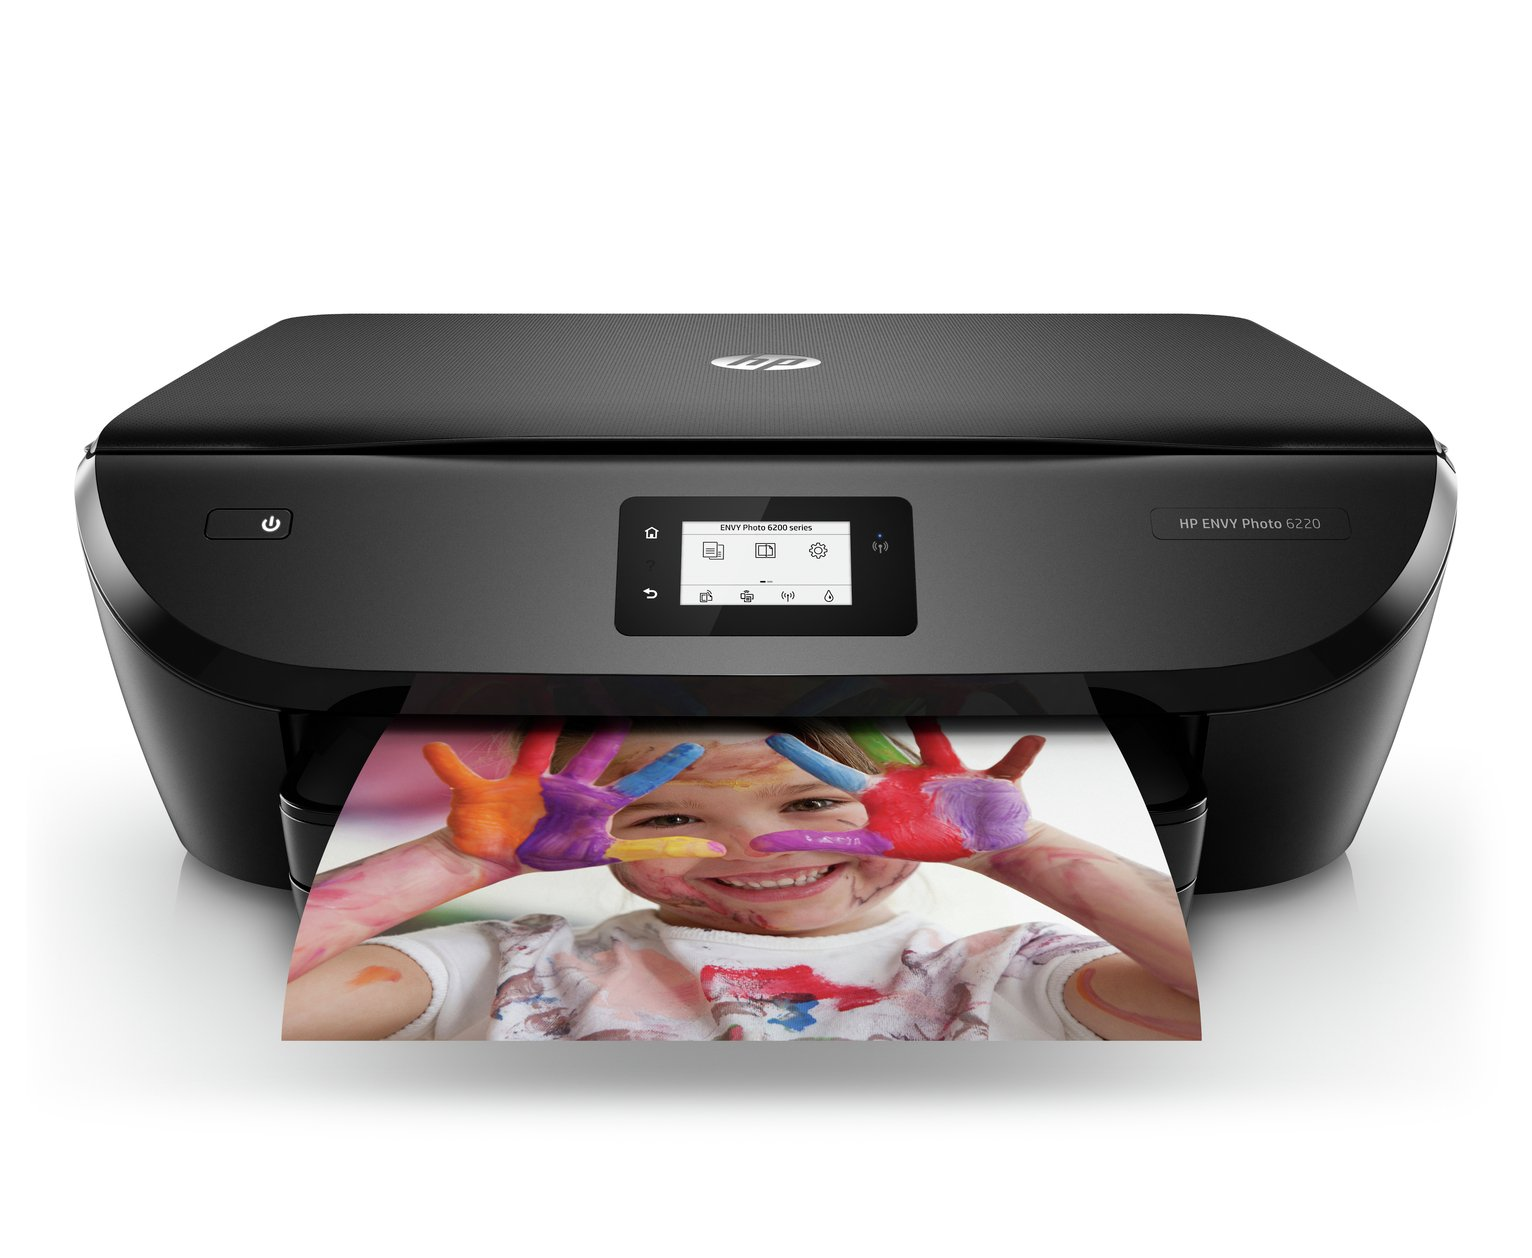 HP Envy 6220 Wireless Printer & 12 Months Instant Ink